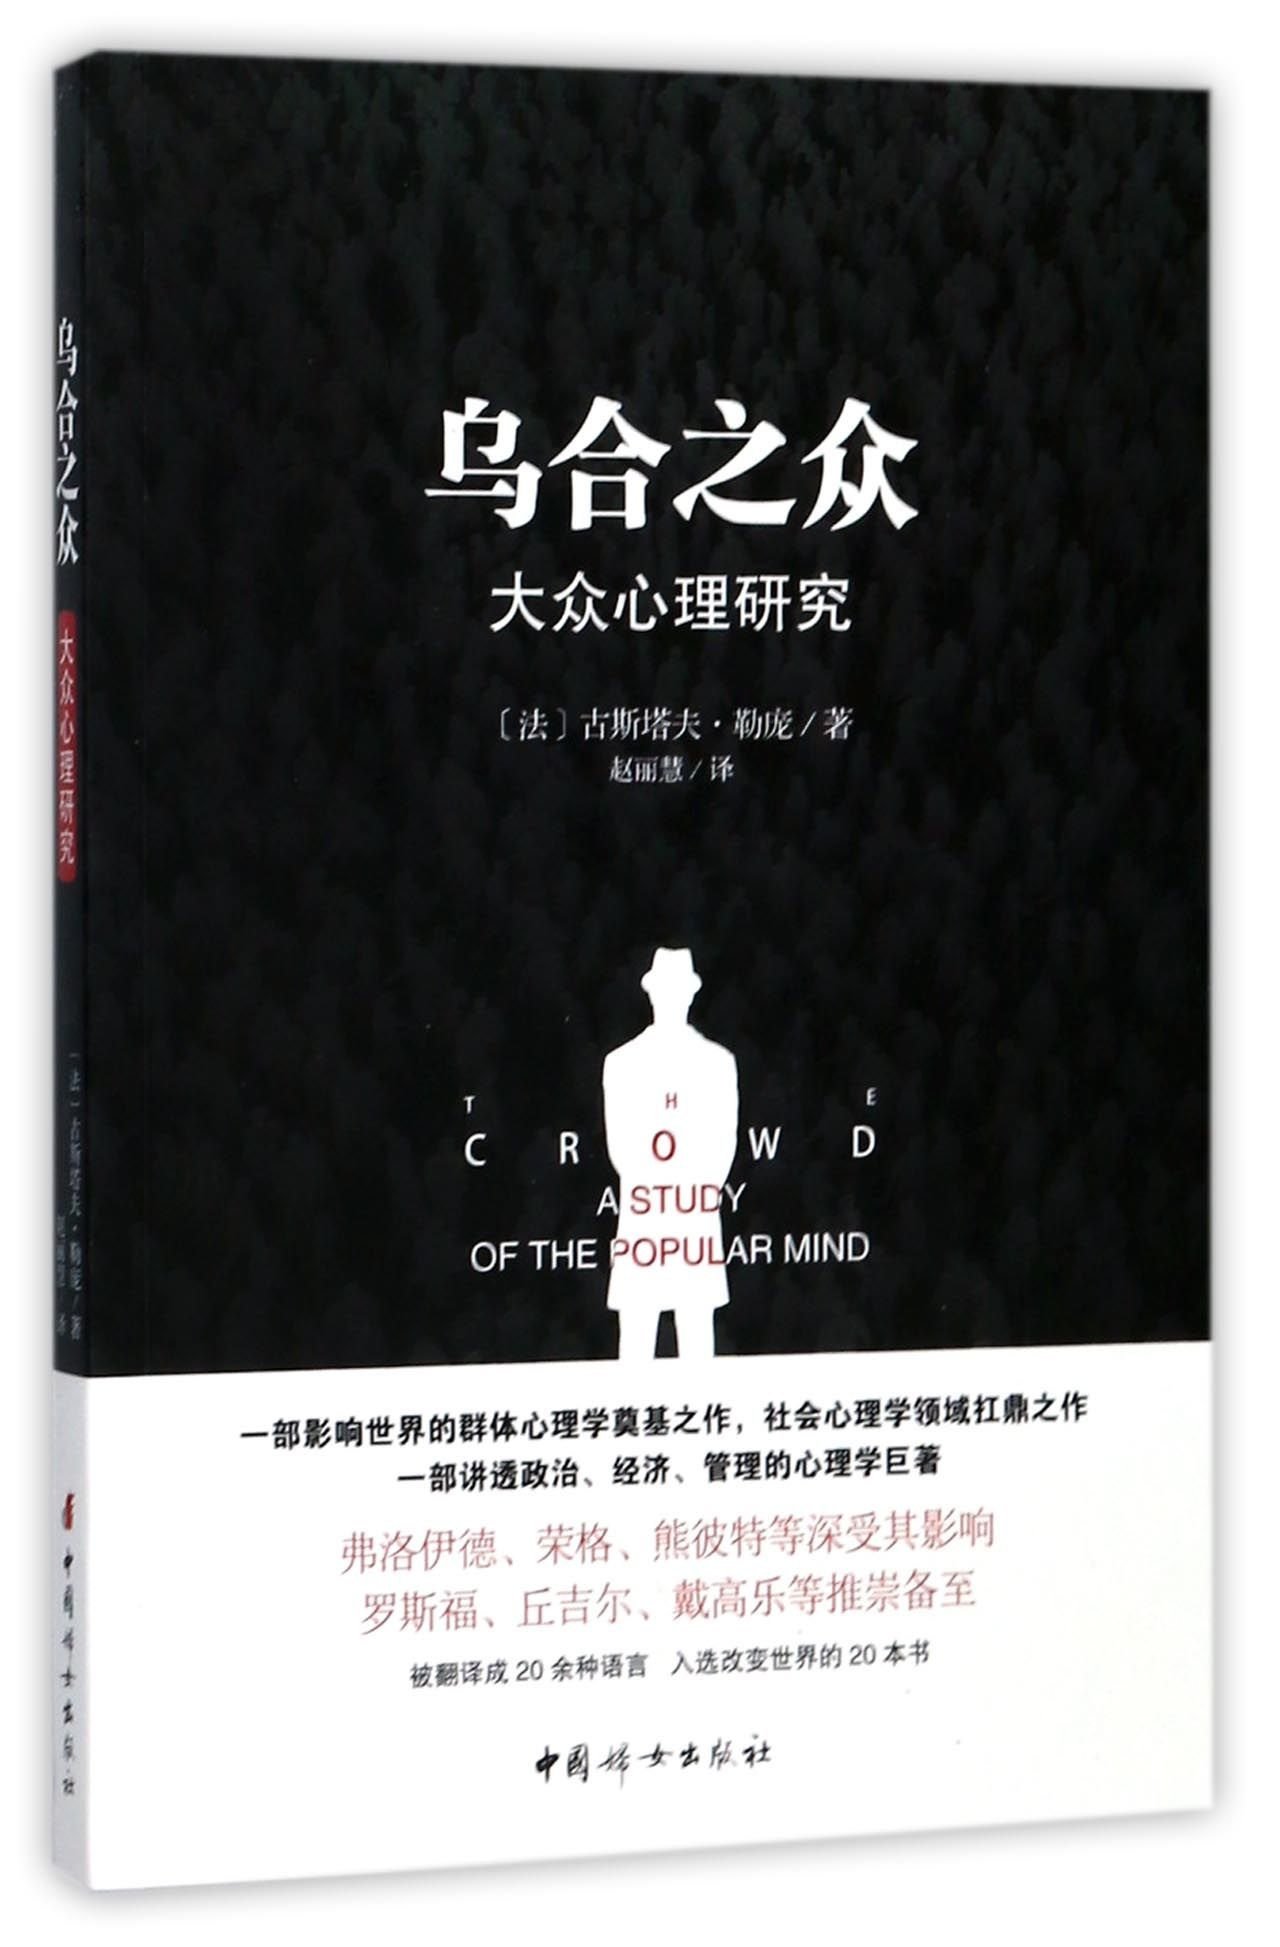 Read Online The Crowd: A Study of the Popular Mind (Chinese Edition) pdf epub